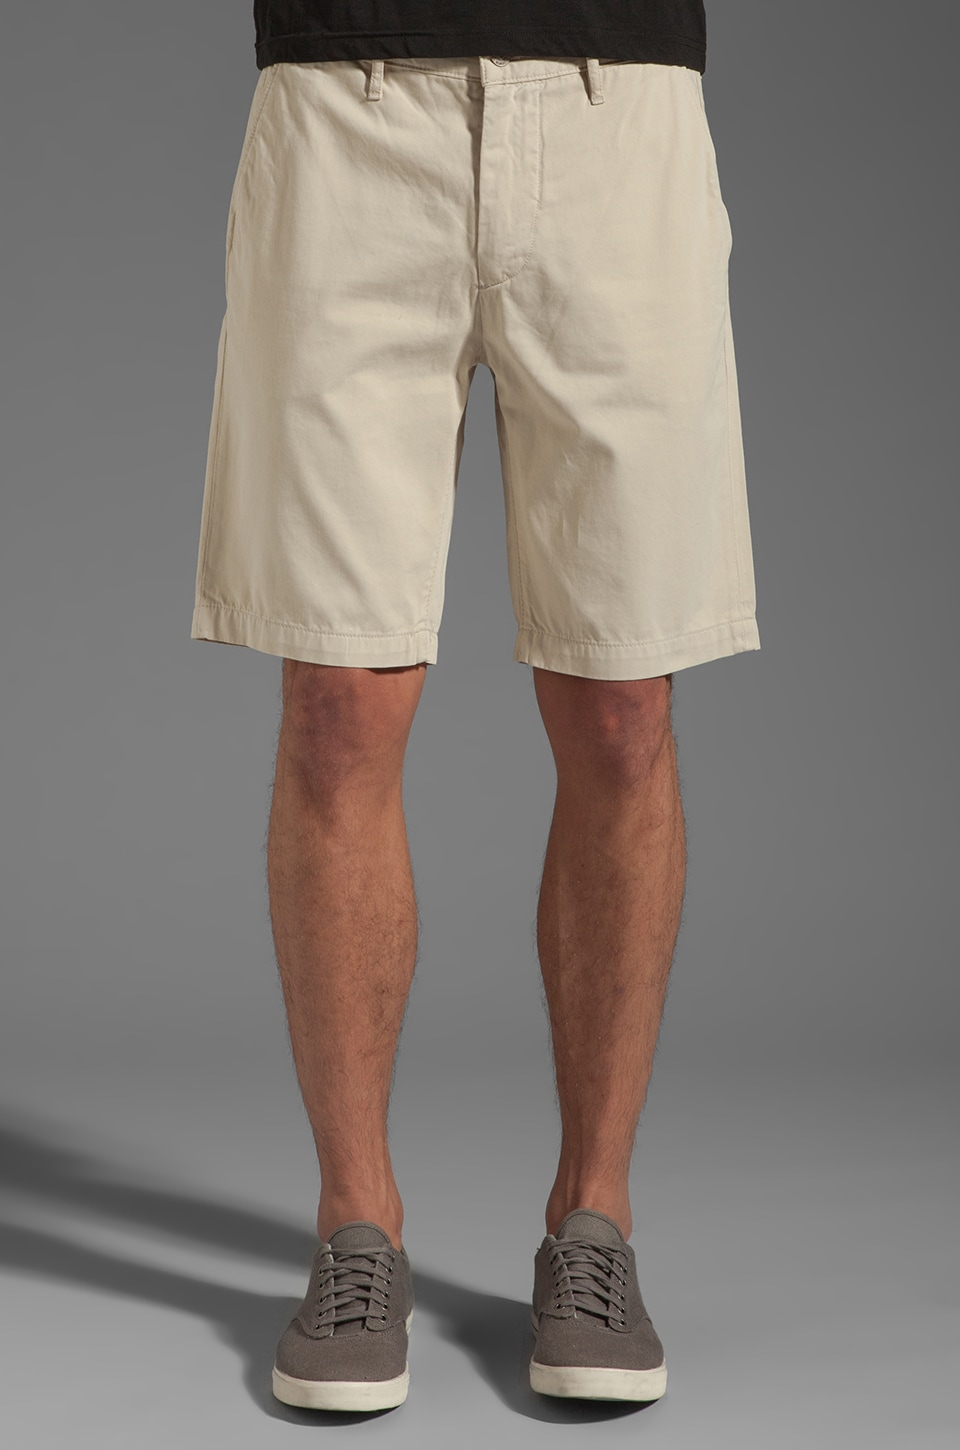 7 For All Mankind Chino Short in Sandstone